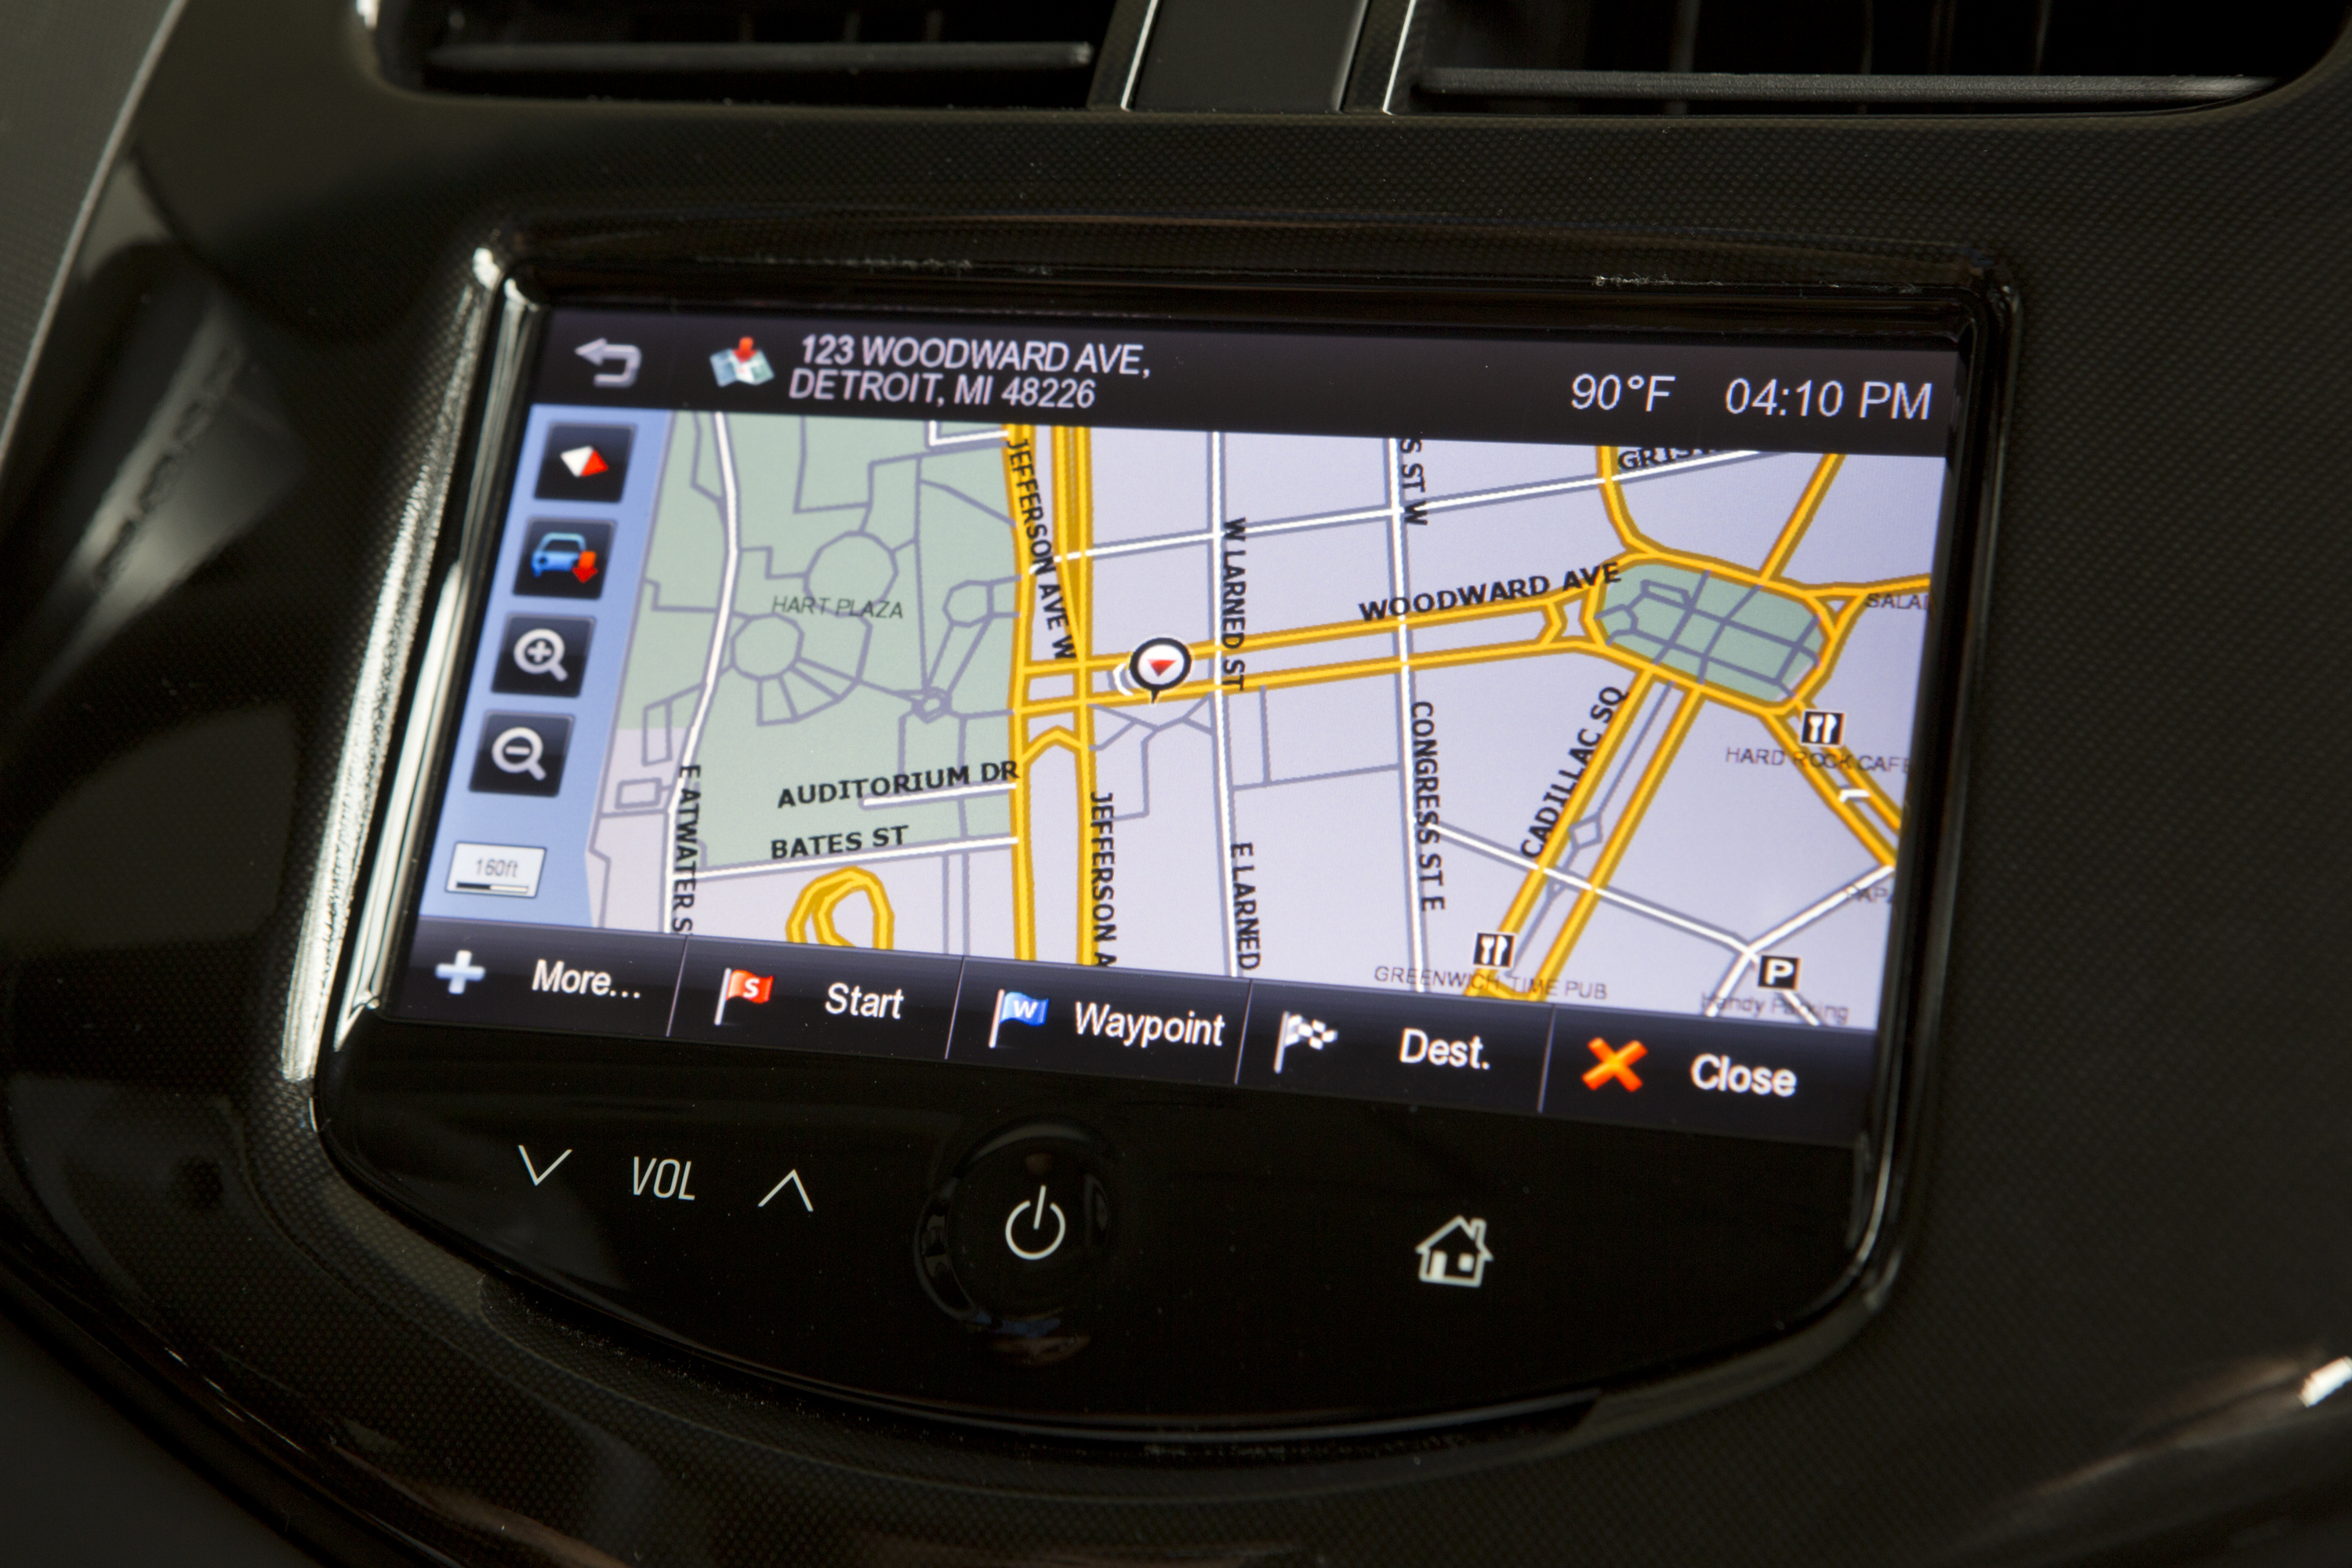 Best Gps Navigation App For Iphone